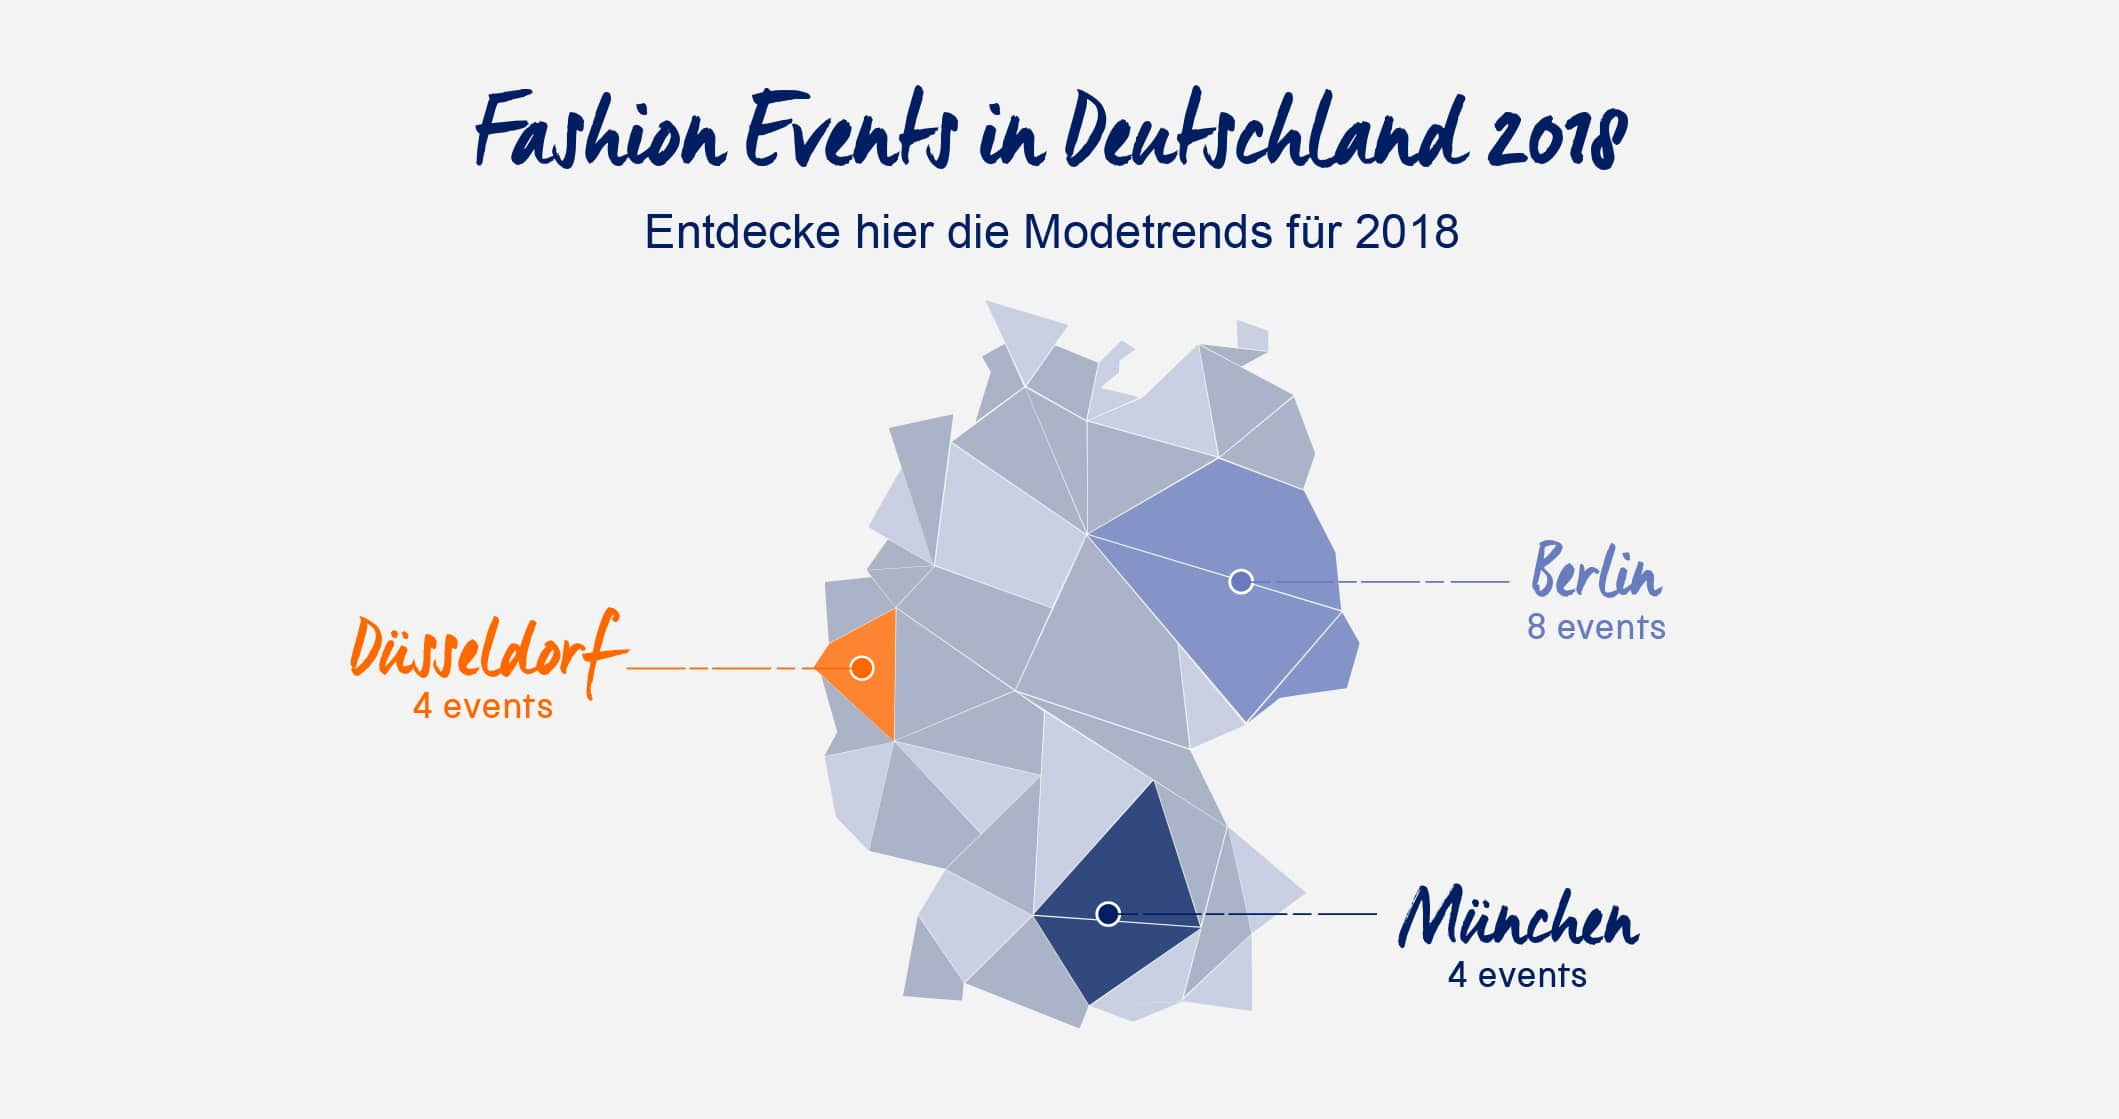 Fashion Events - Deutschland 2018